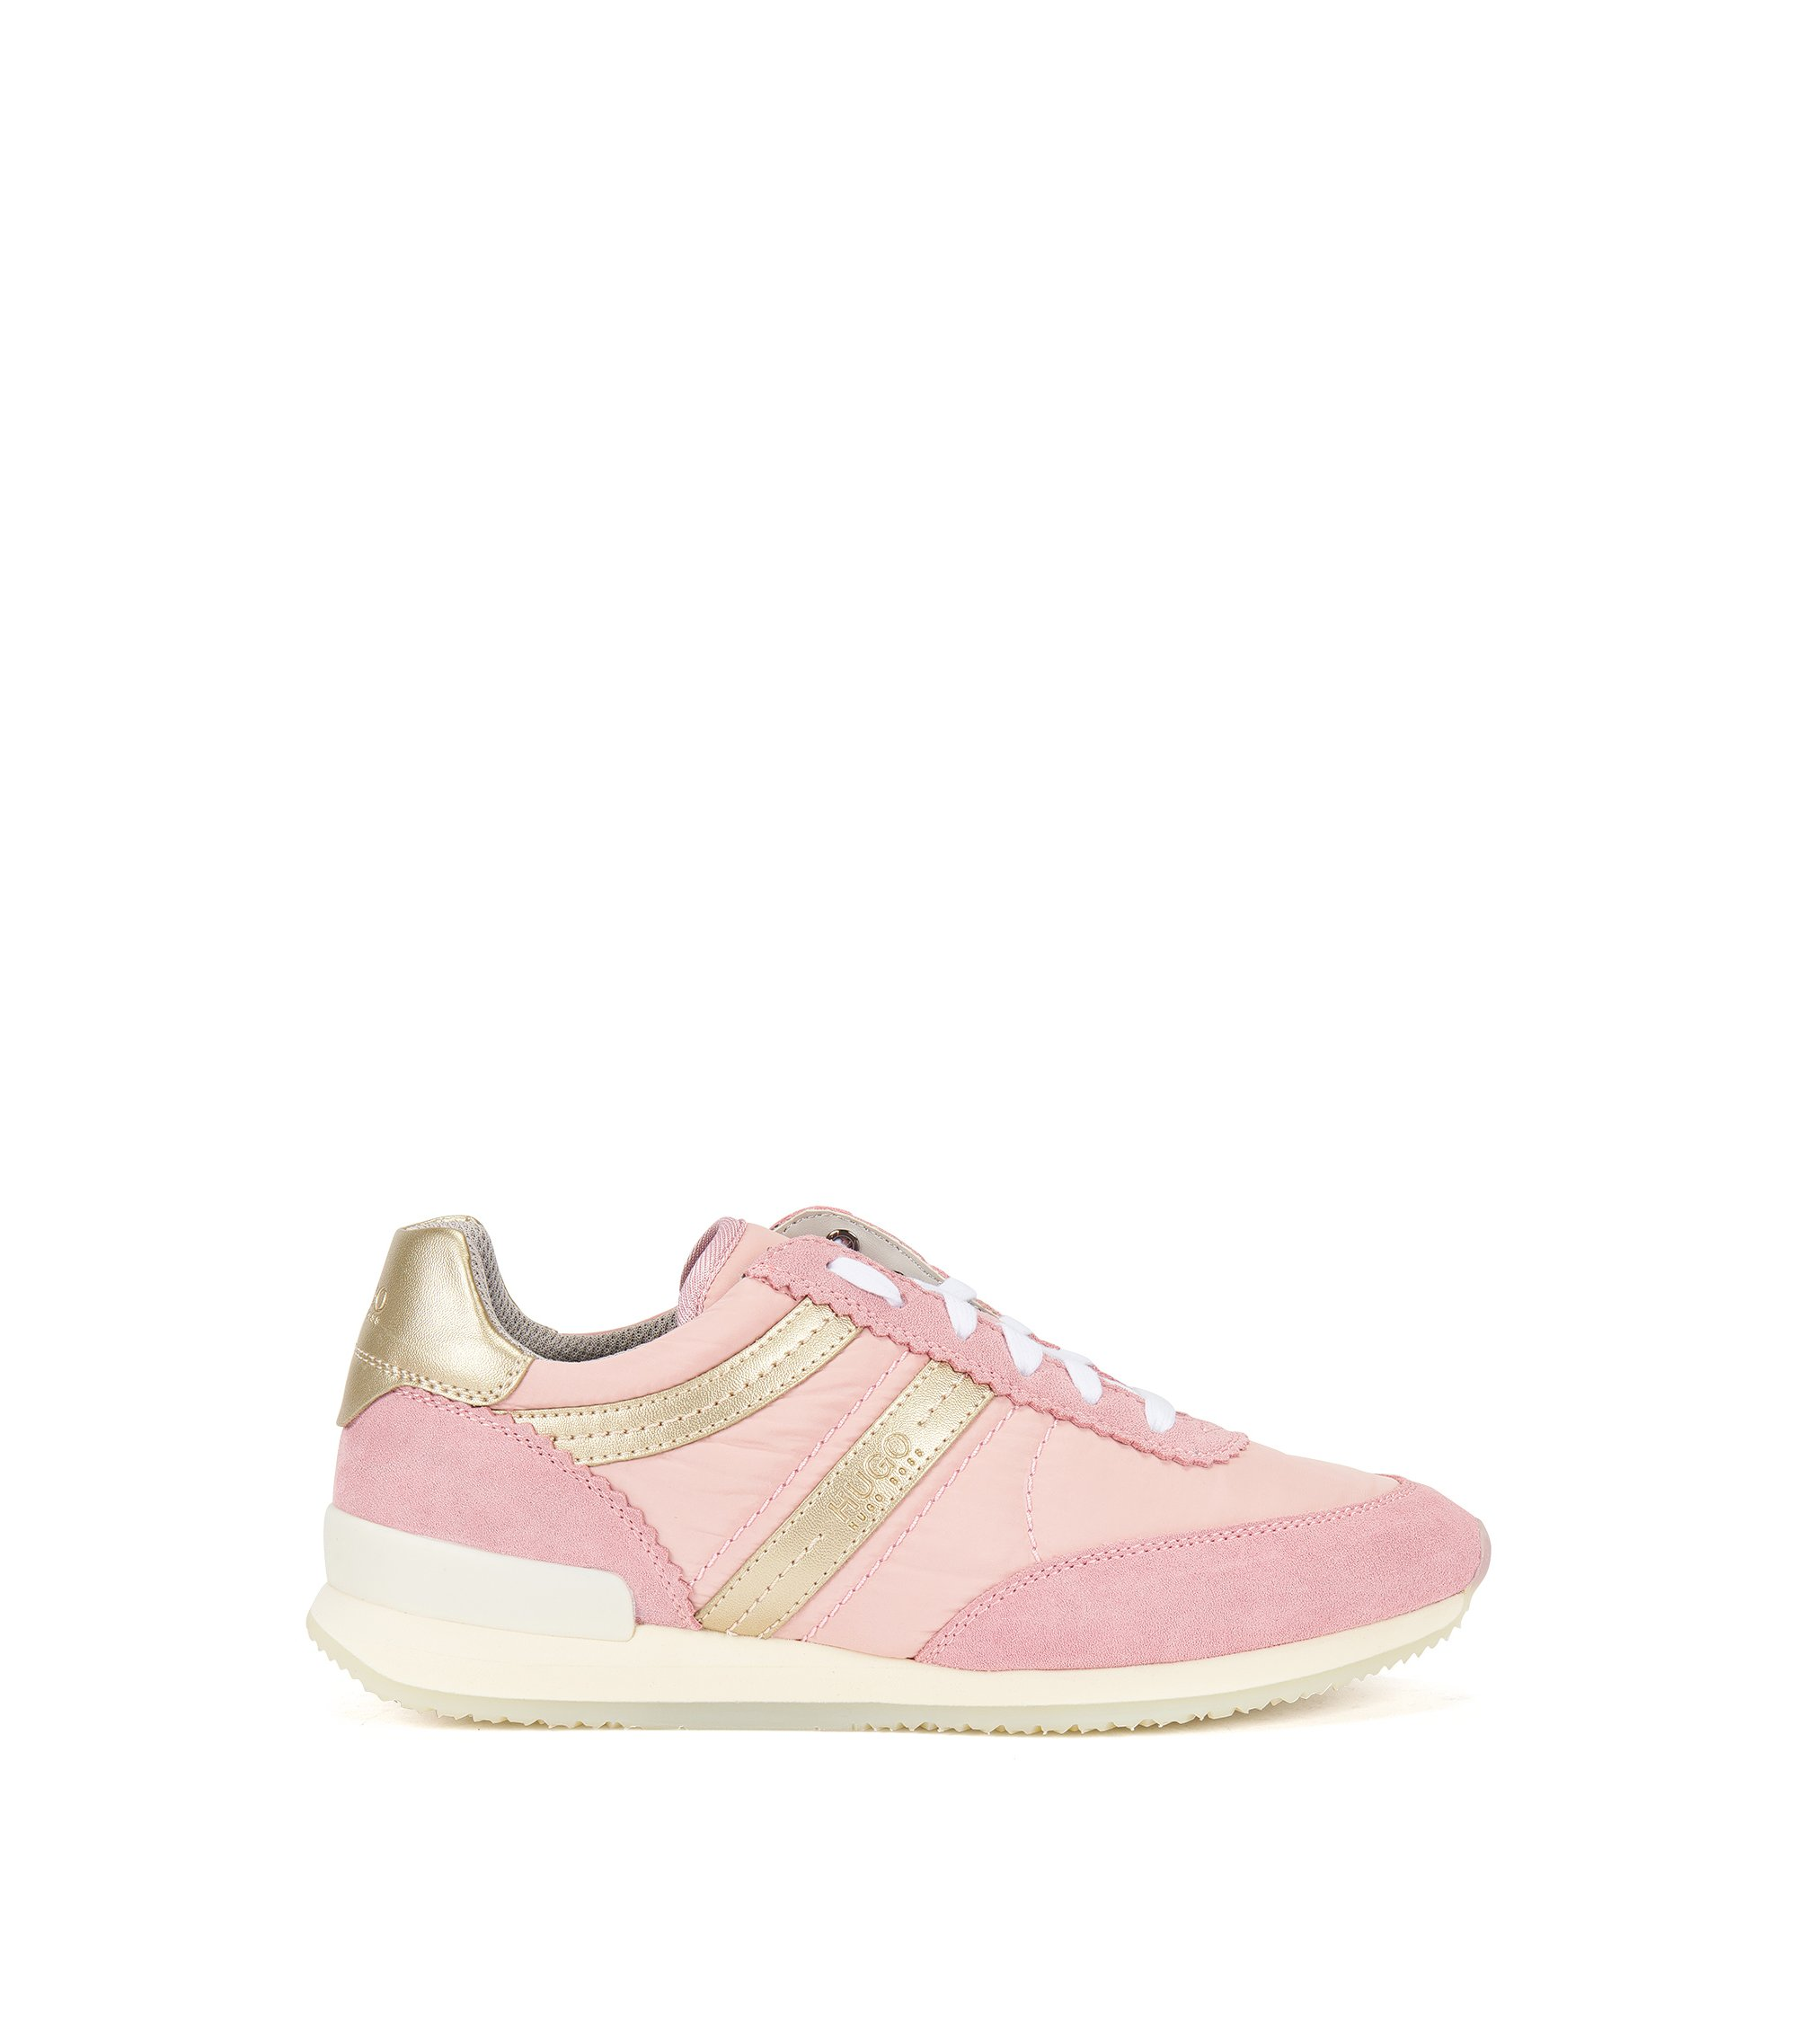 Lace-up trainers in Italian leather, light pink